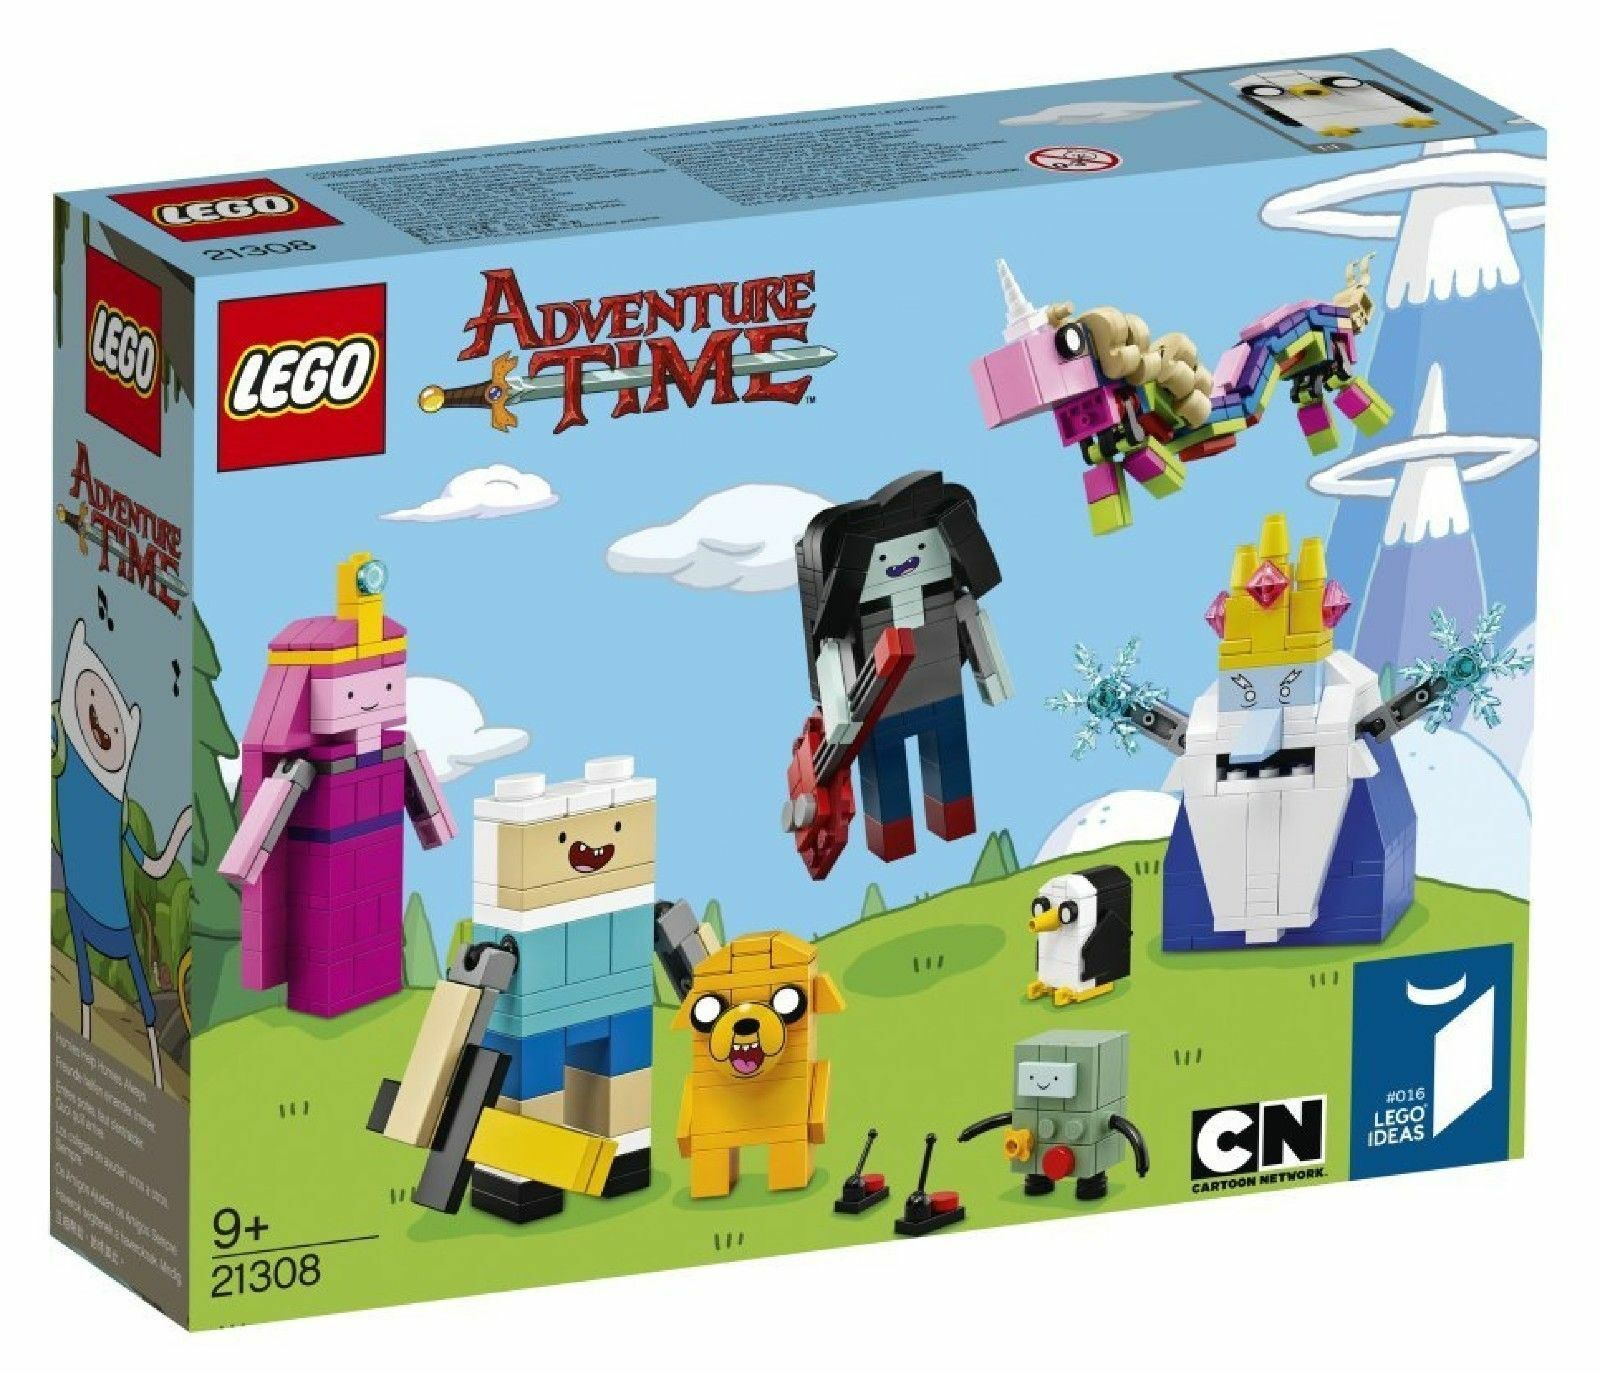 LEGO ADVENTURE TIME  9+ ANNI ART. 21308